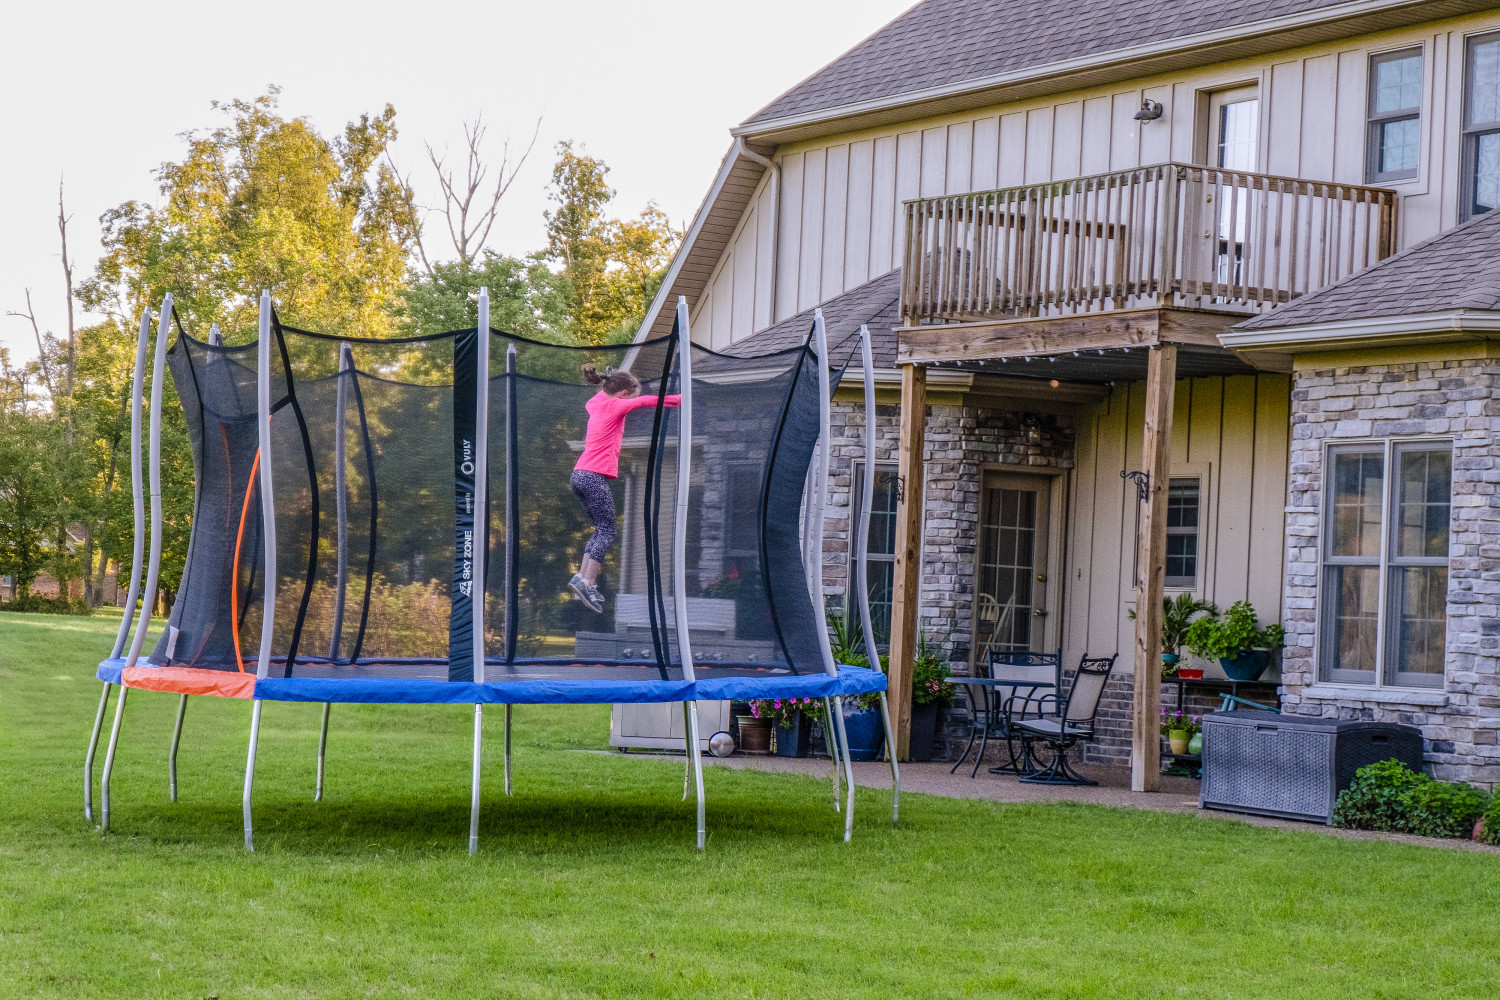 Trampoline with a safety net, ready to be bounced on!